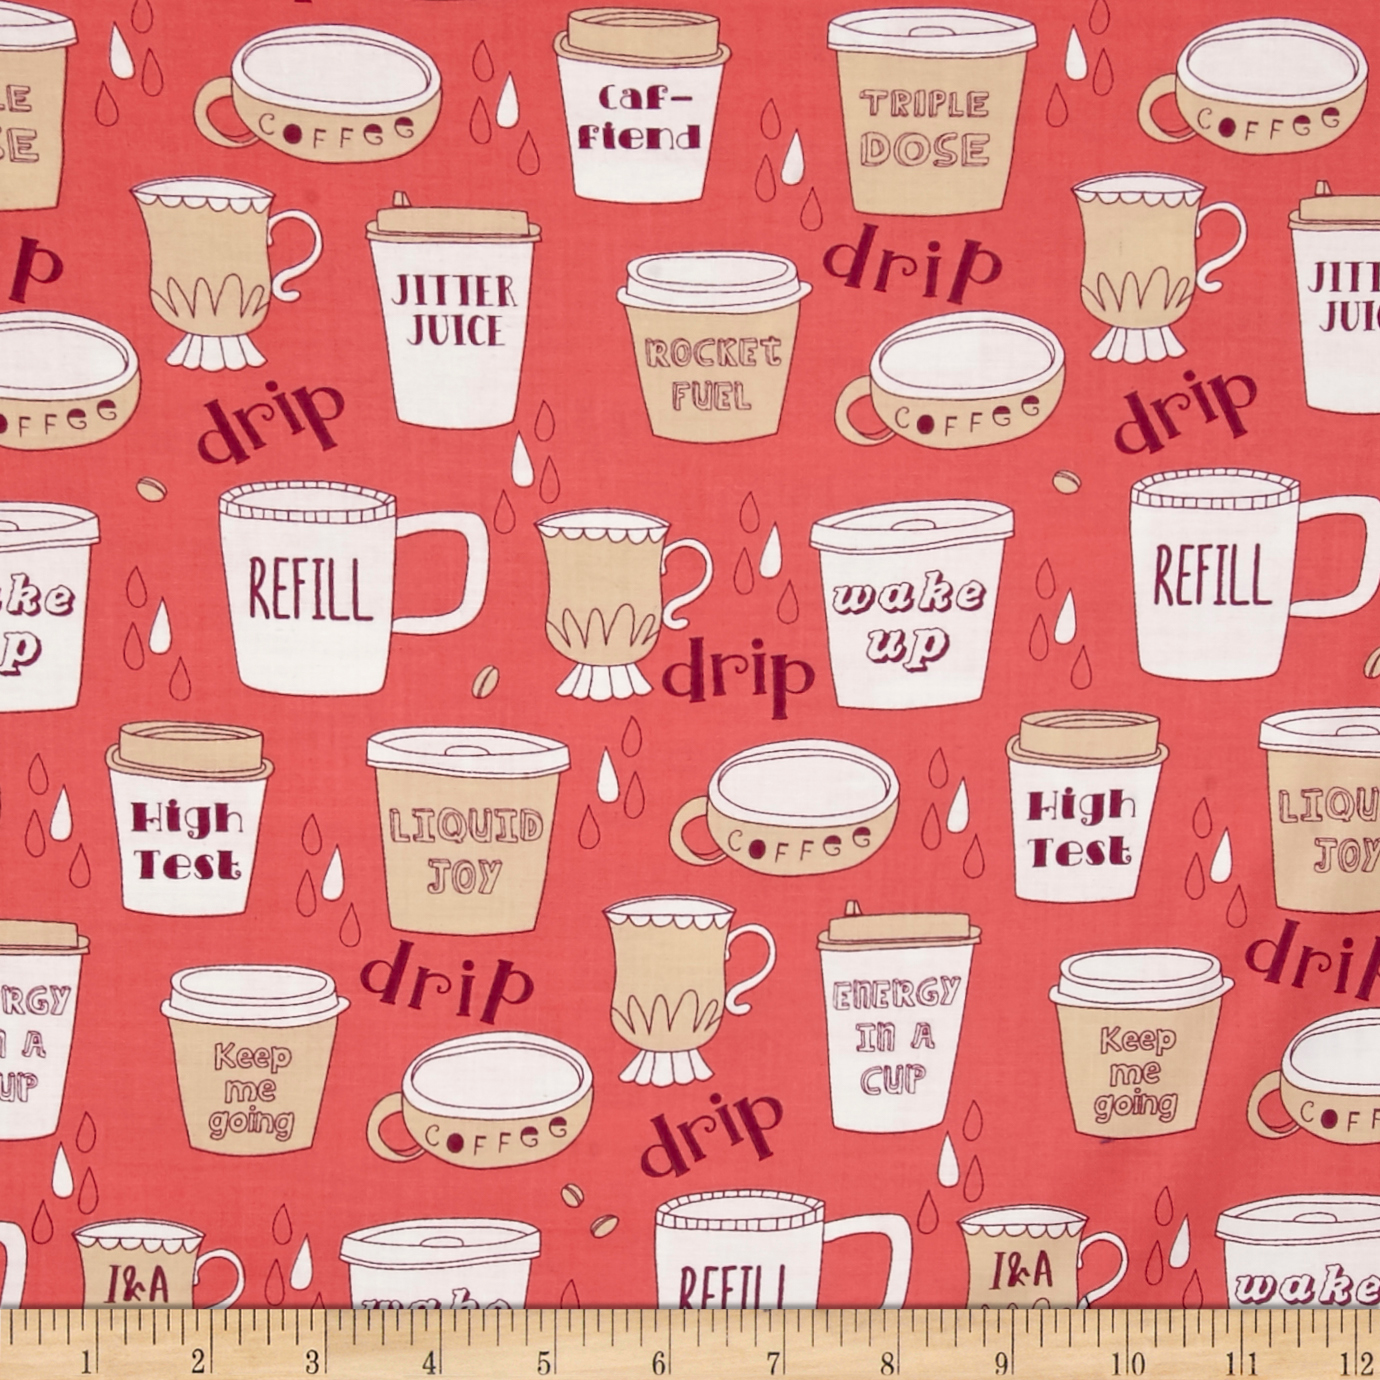 Ink & Arrow Caf-Fiend Coffee Cups Punch Fabric by Quilting Treasures in USA